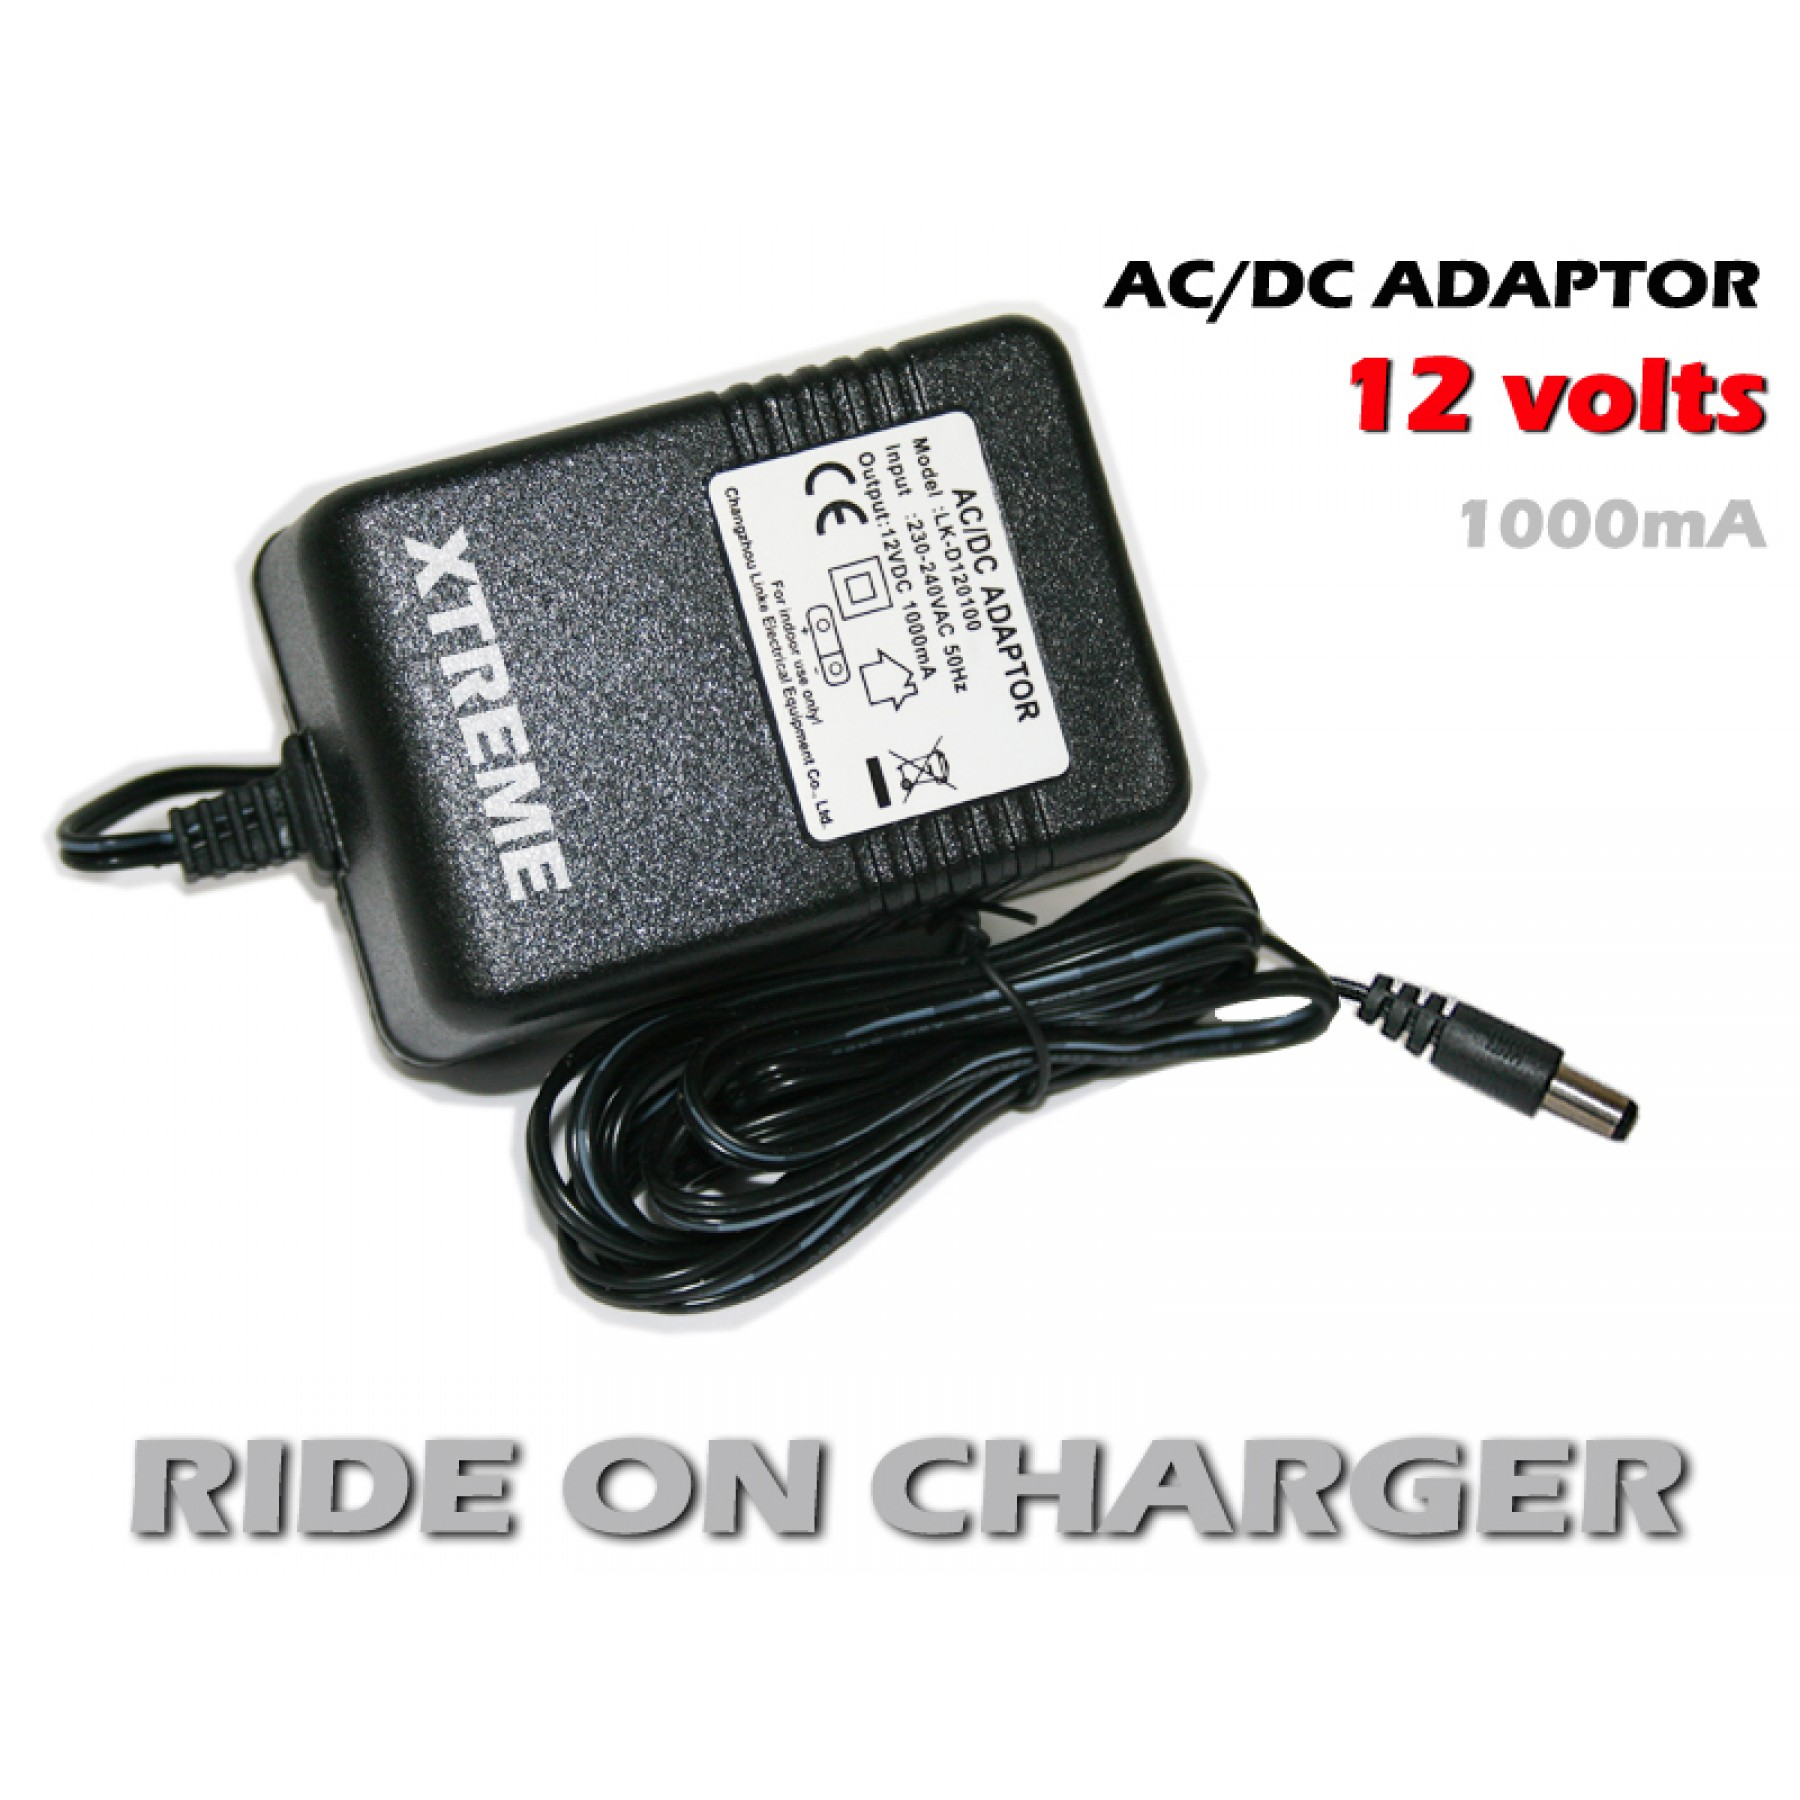 LK-D120100 Childs Car HS Replacement Power Supply for Output:12VDC 1000mA Model